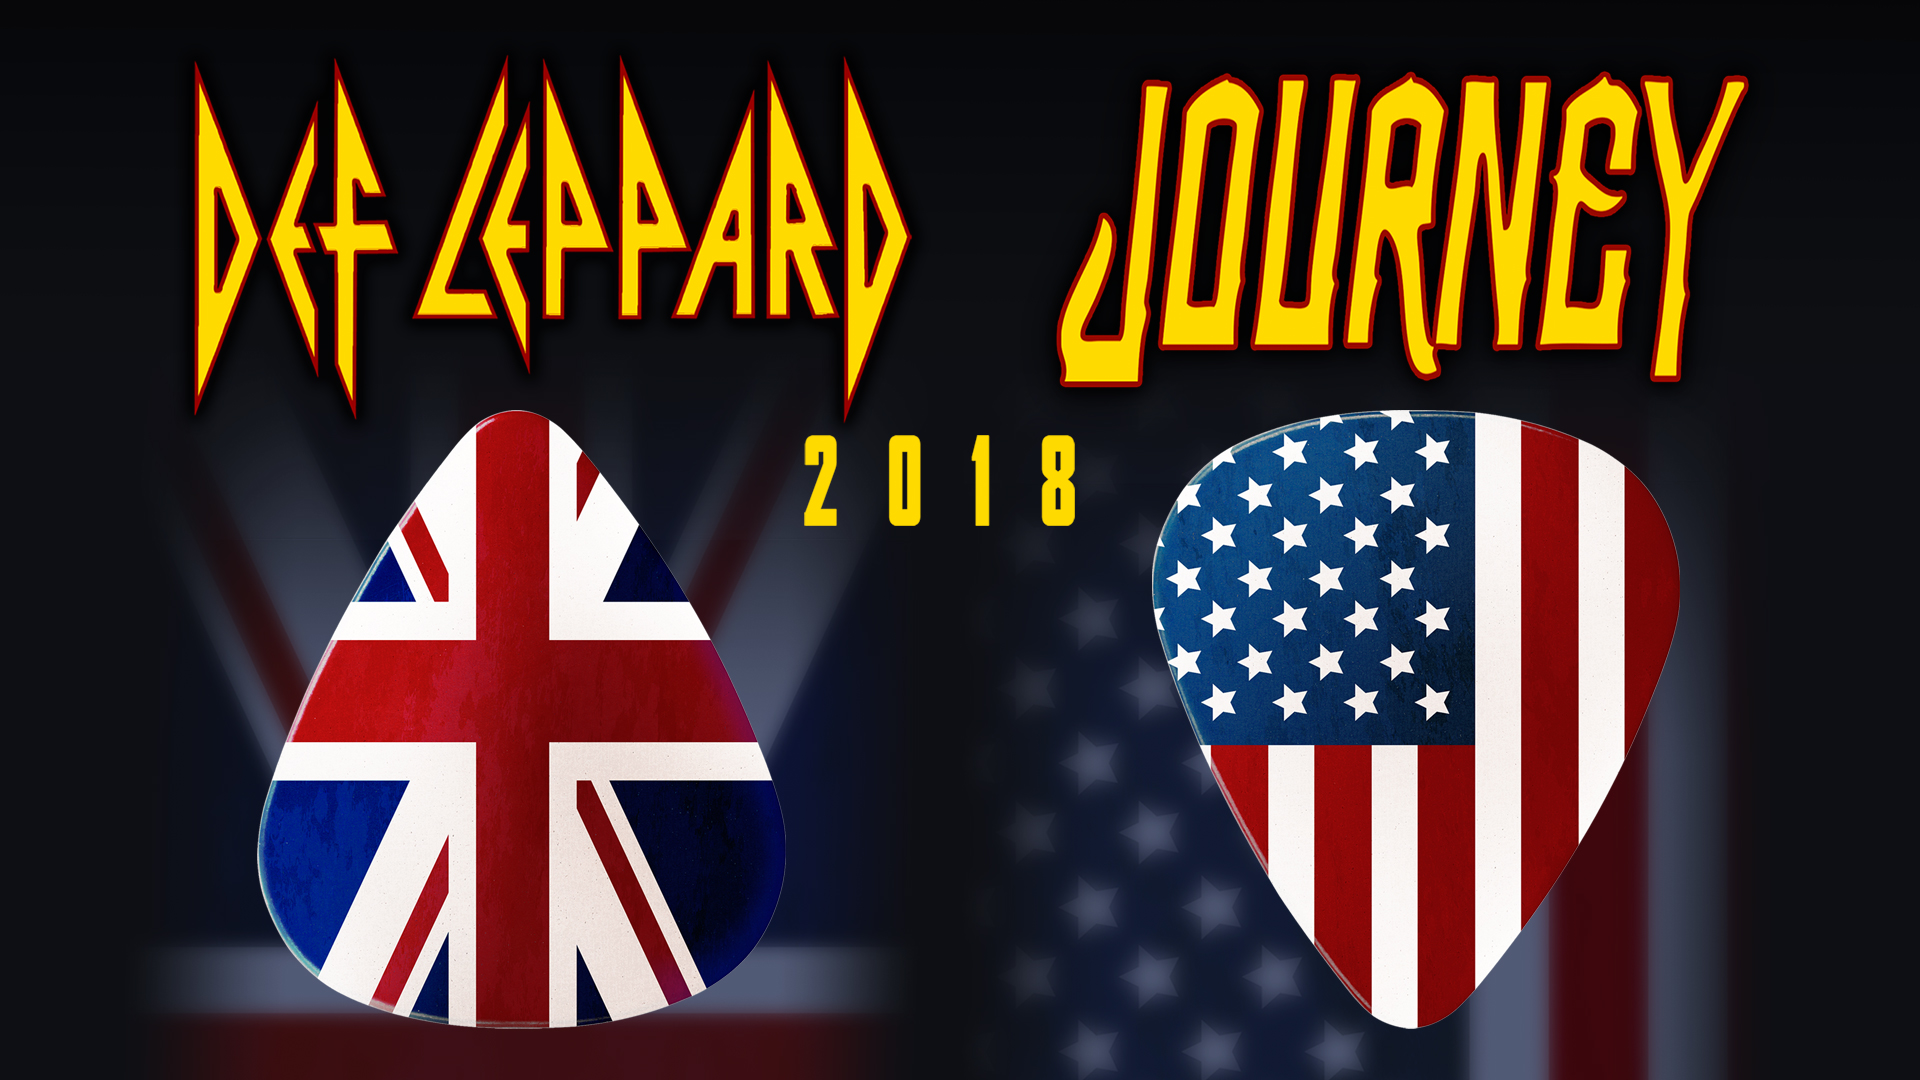 second houston show added to def leppard x journey tour | def leppard